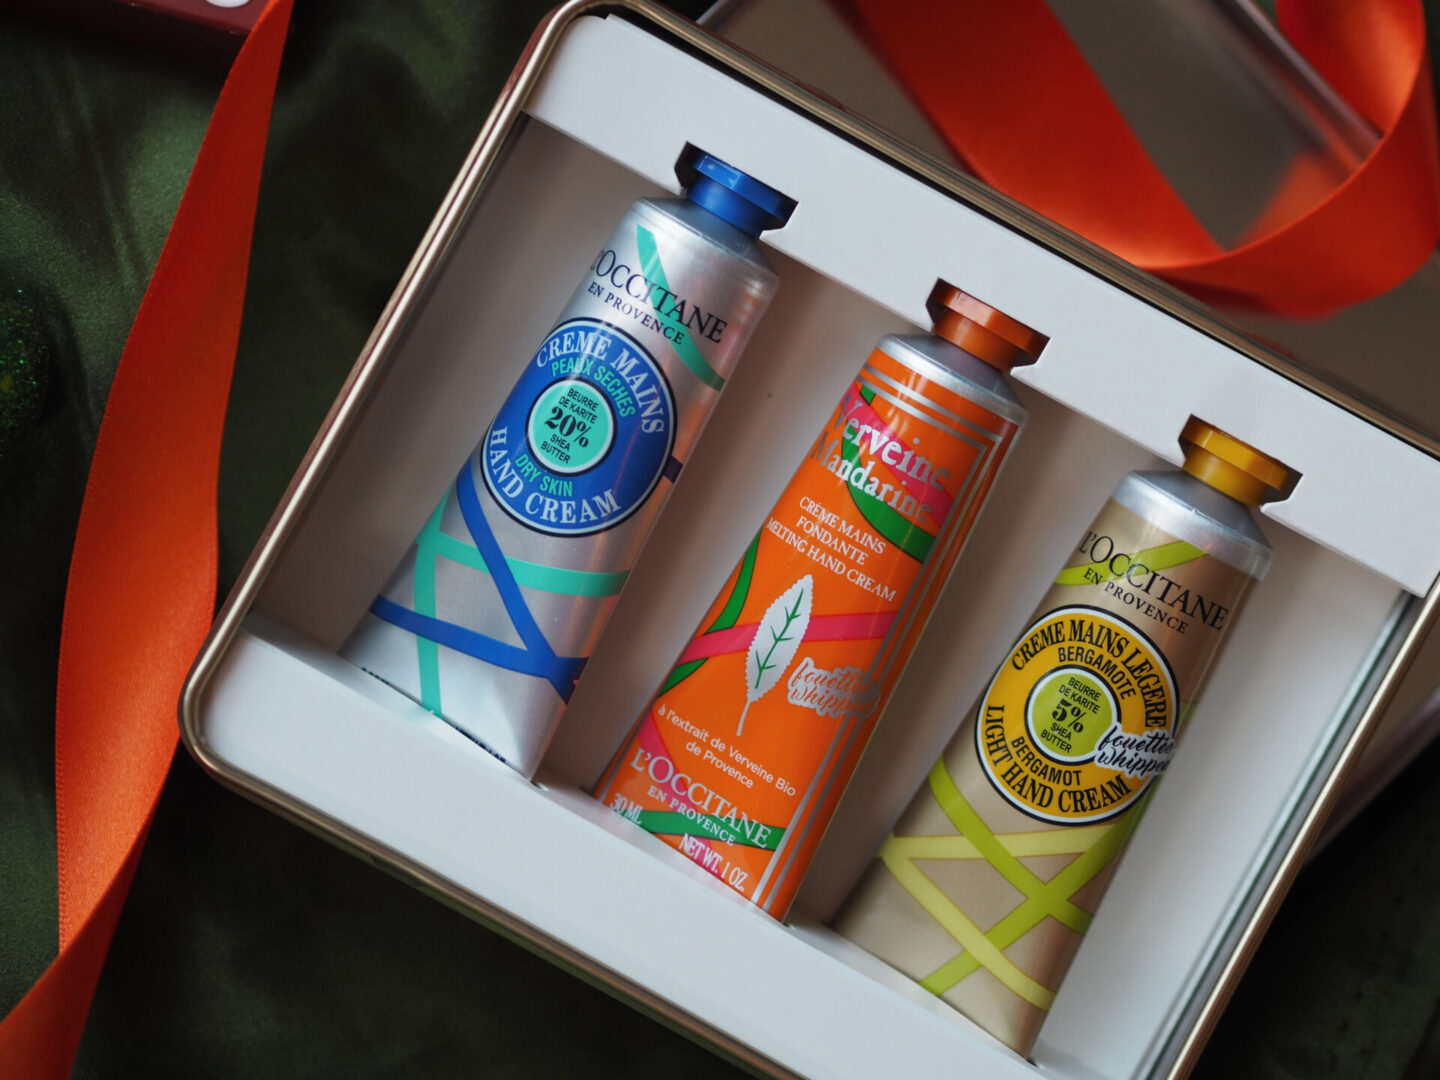 l'occitane hand cream trio set